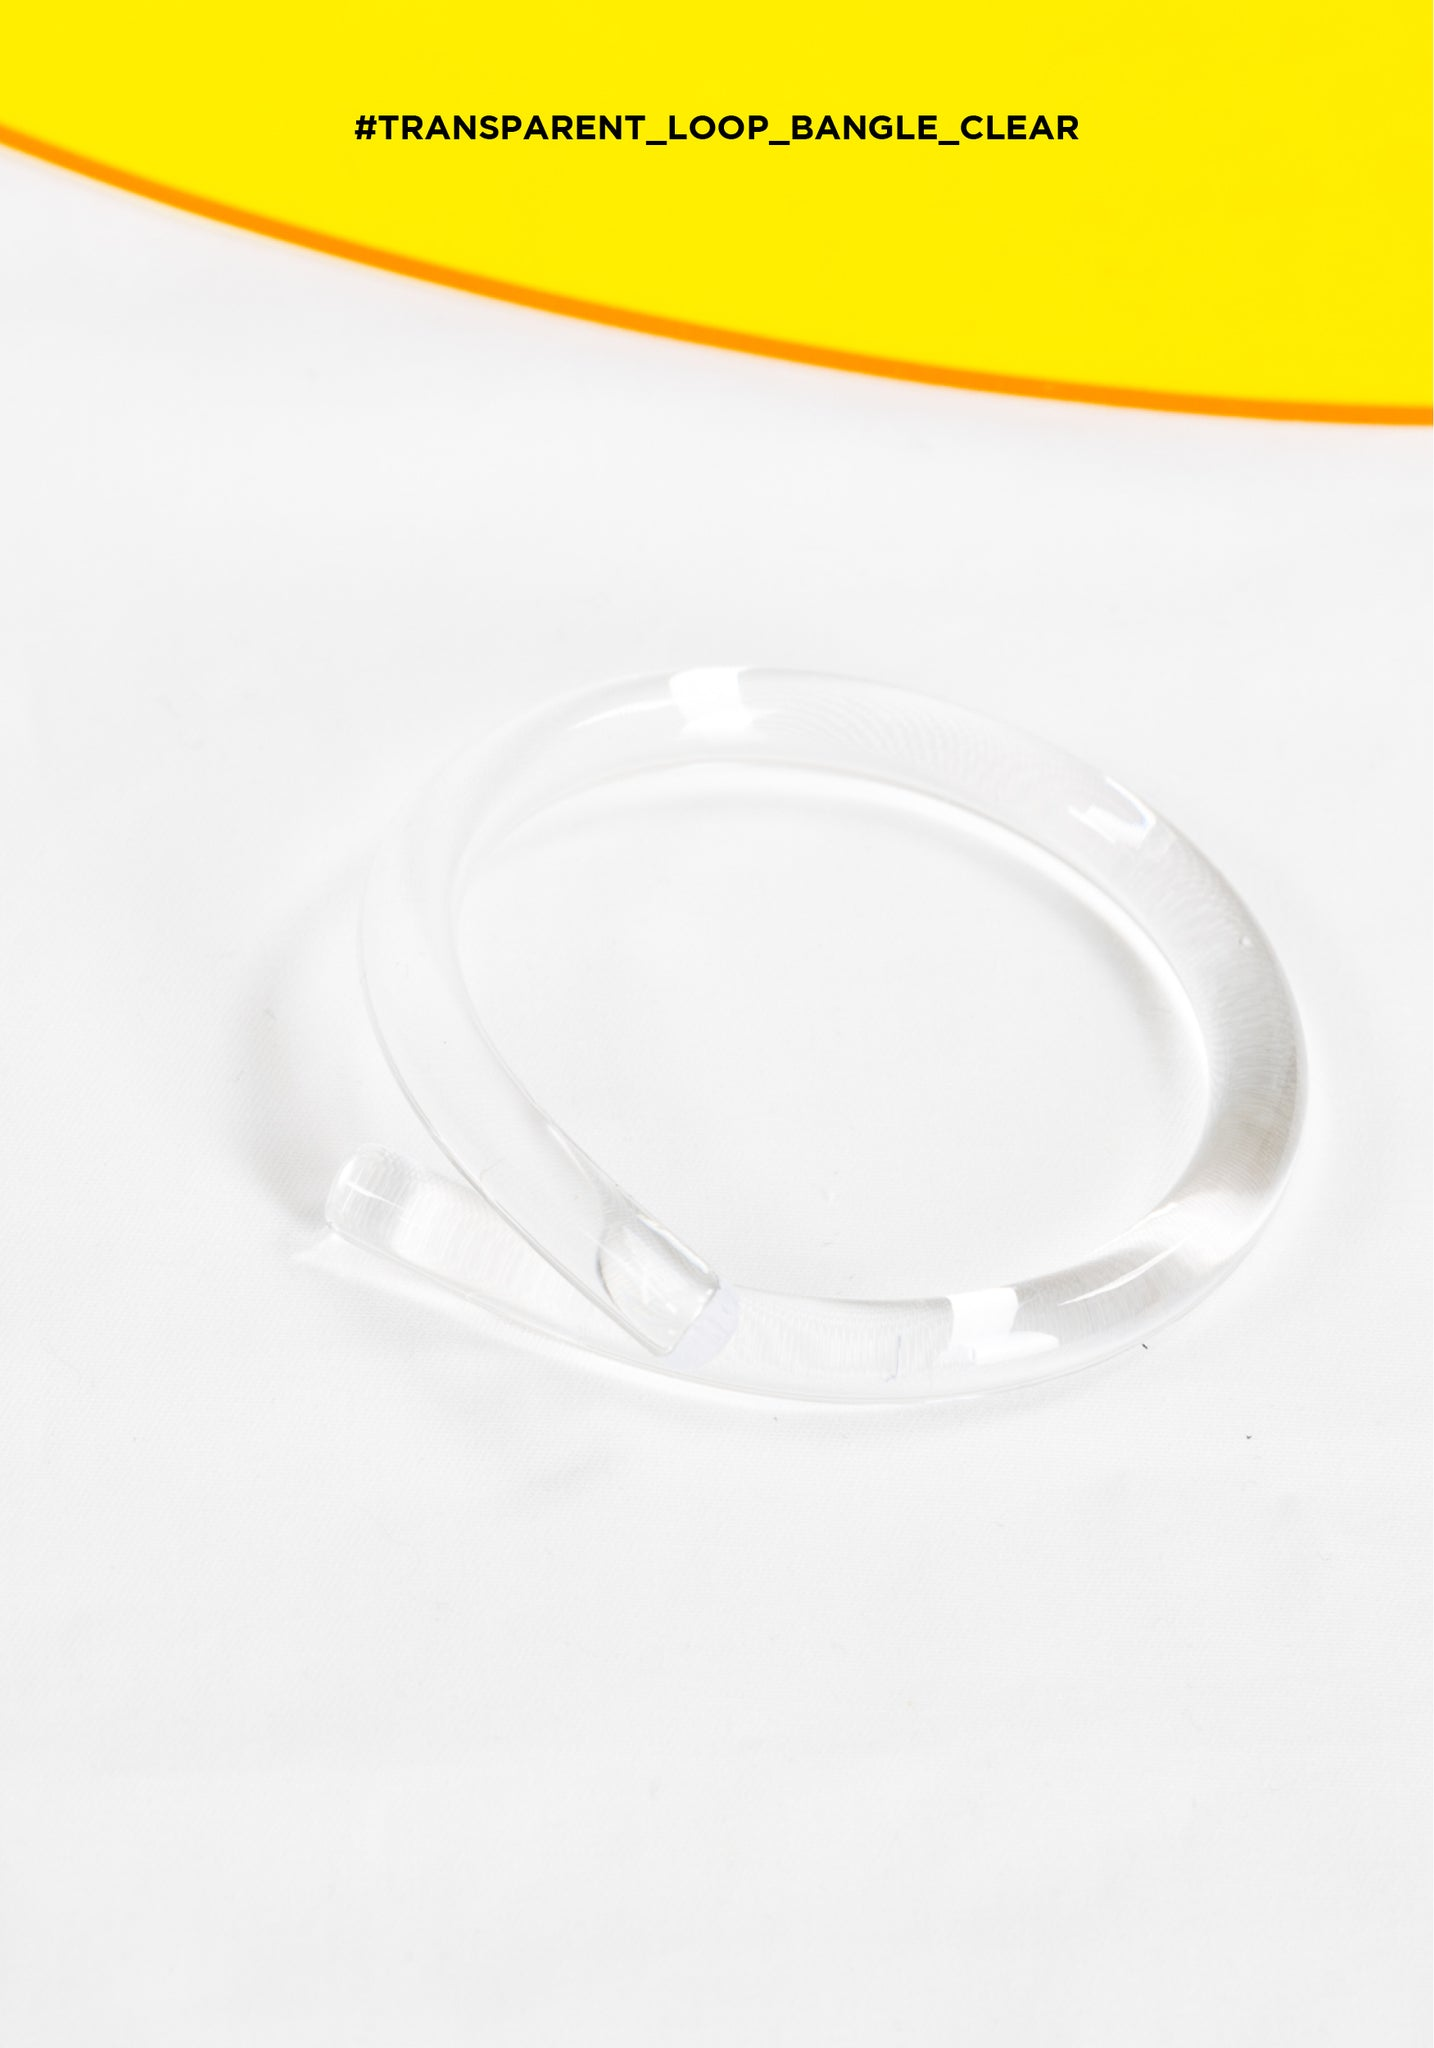 Transparent Loop Bangle Clear - whoami